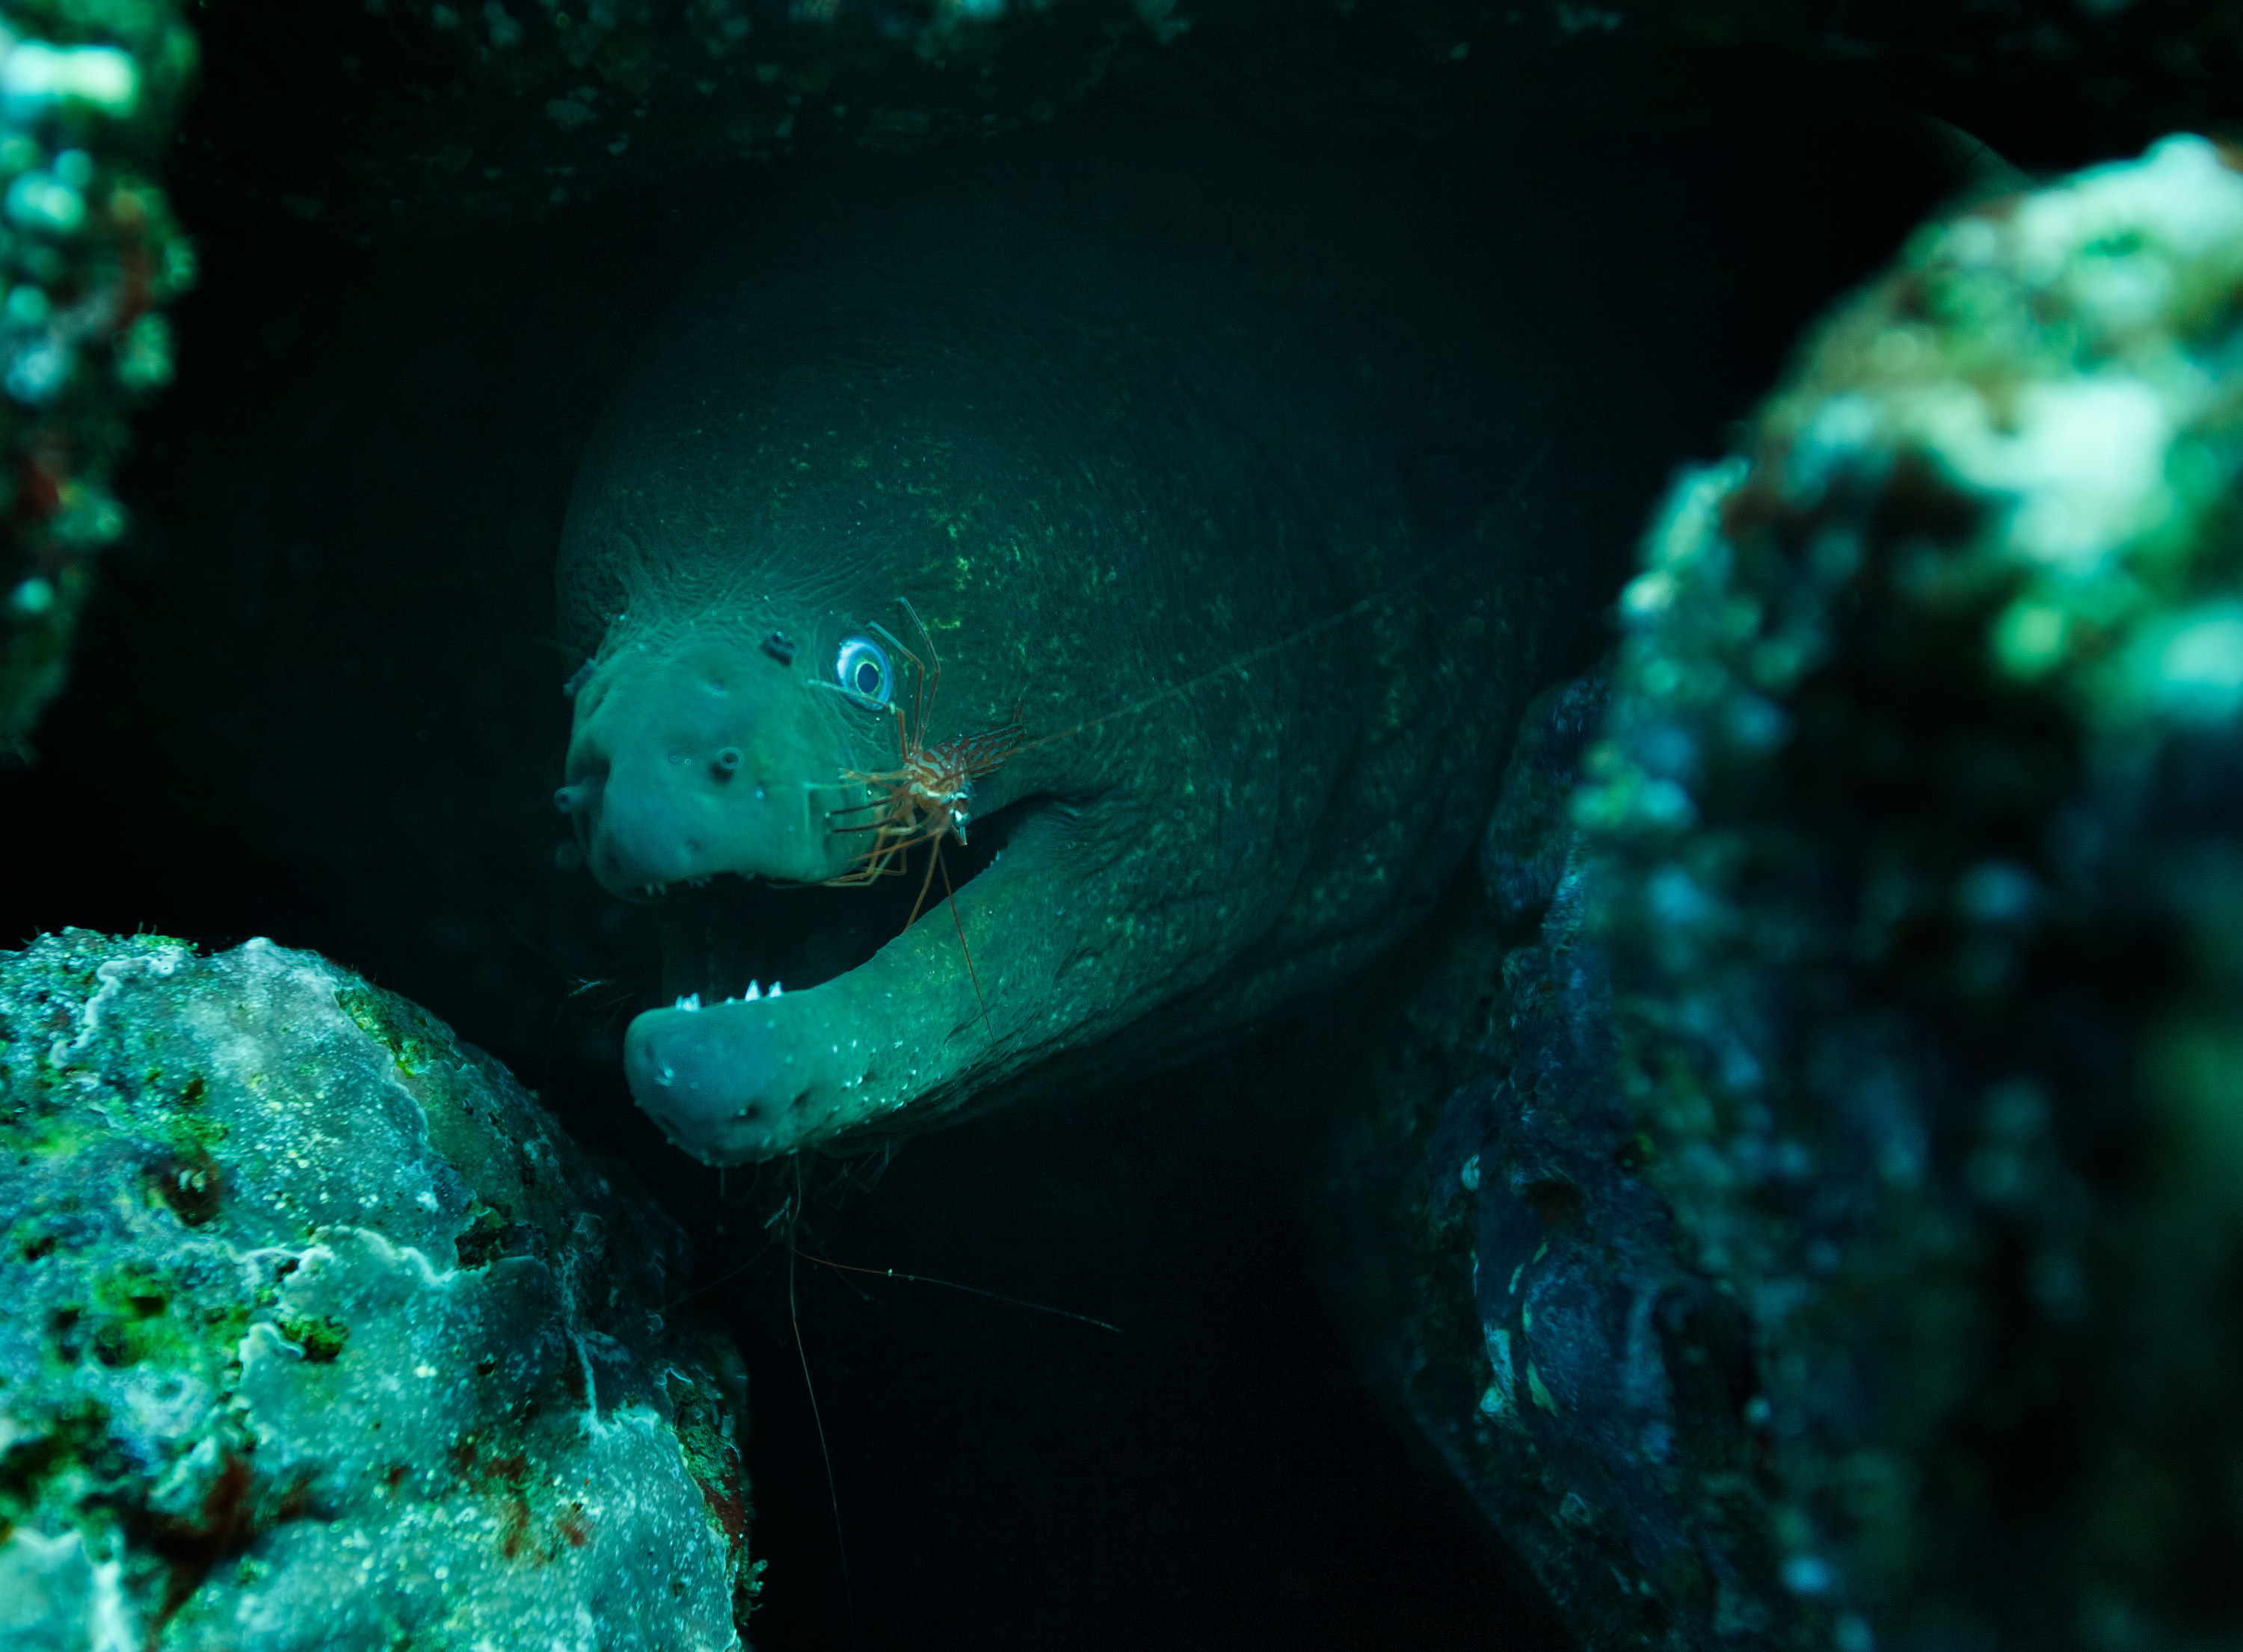 A shrimp grazing the skin of an eel tucked in between some rocks